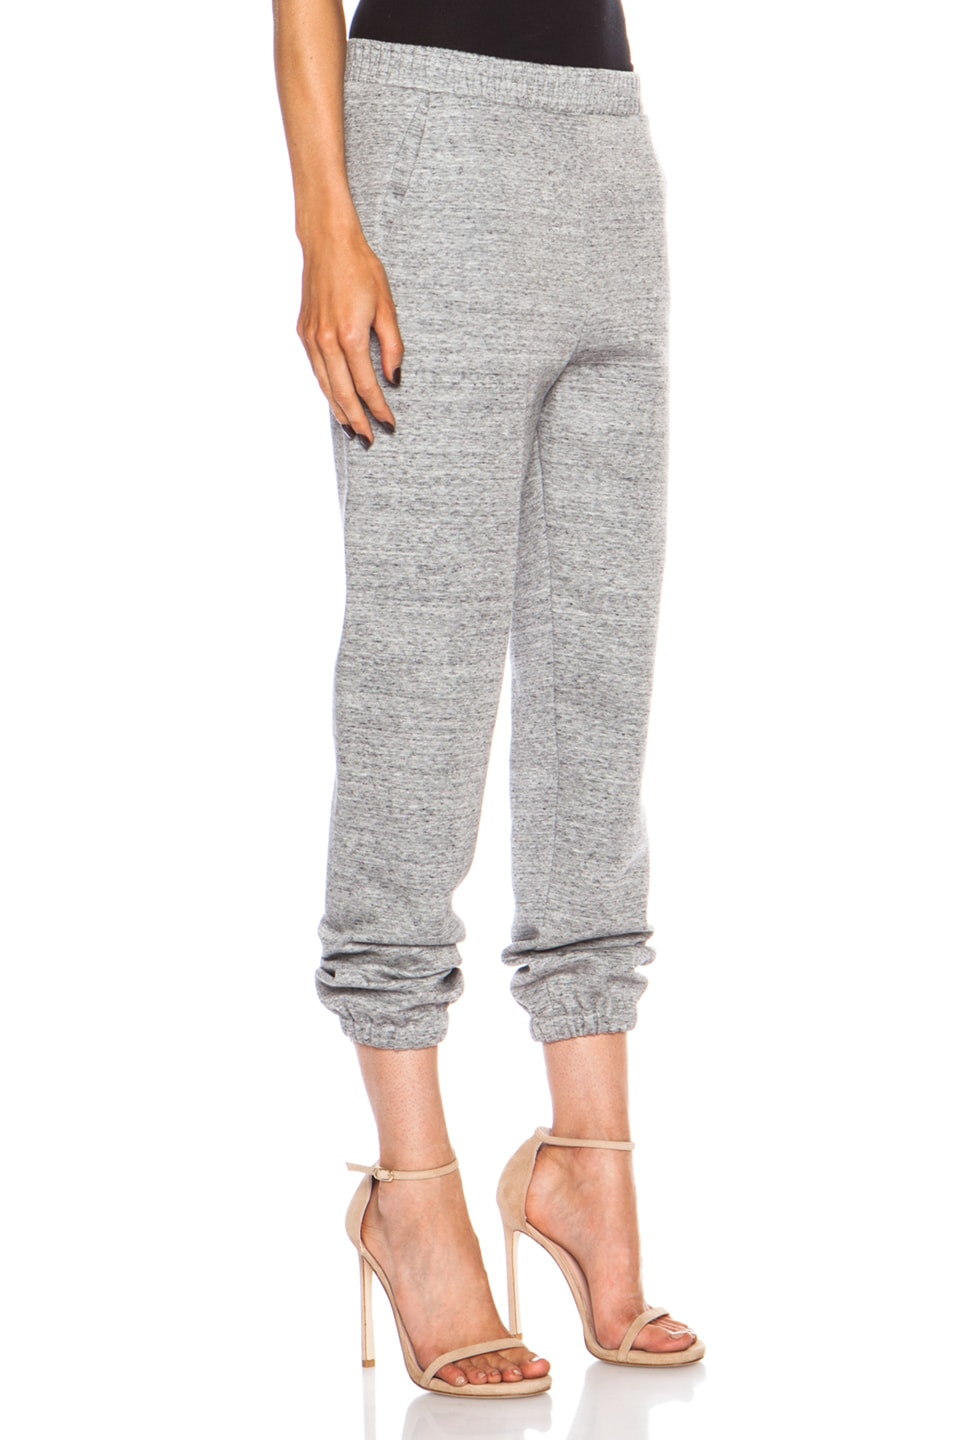 Image 3 of 3.1 phillip lim Cotton-Blend Sweatpant in Charcoal